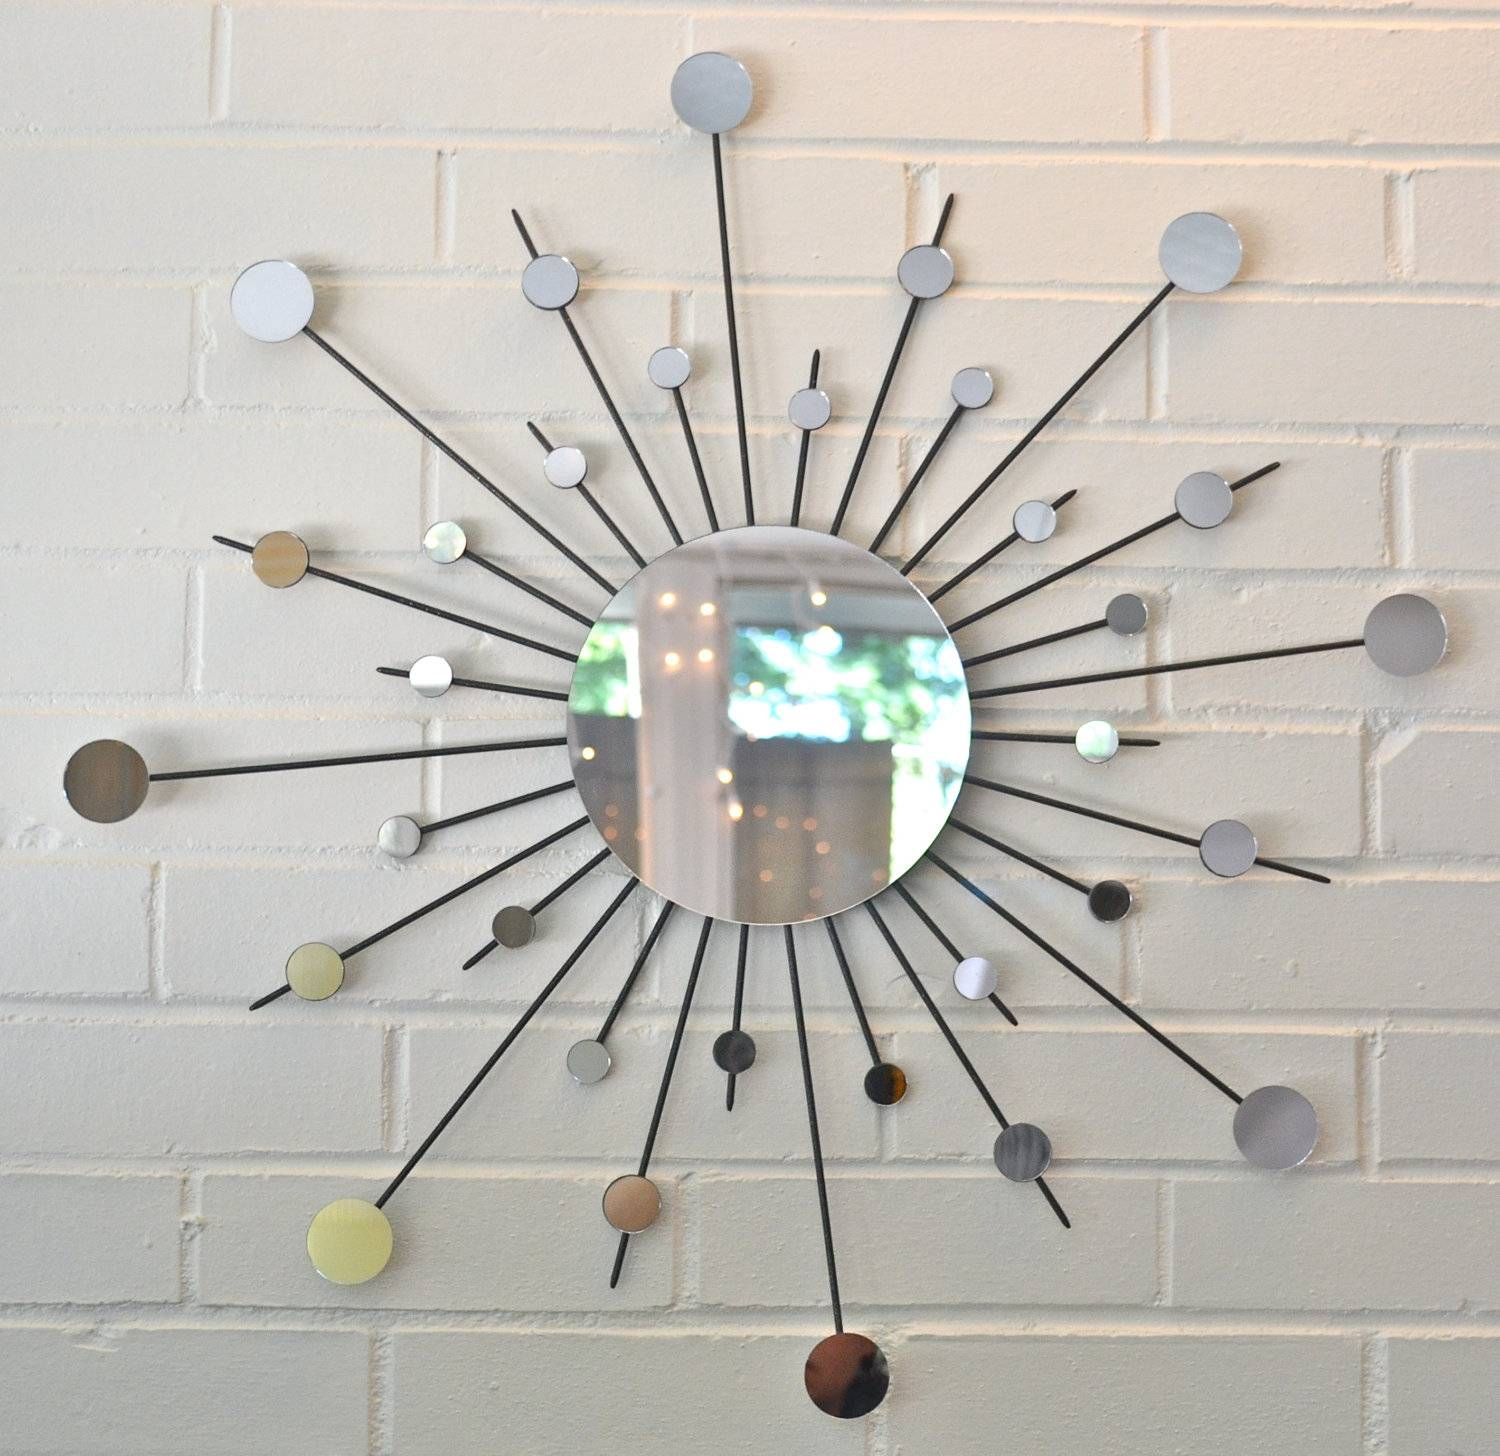 Wall Art Designs: Mirror Wall Art Luxury And Stylish Modern Wall Inside Current Modern Mirrored Wall Art (View 18 of 20)